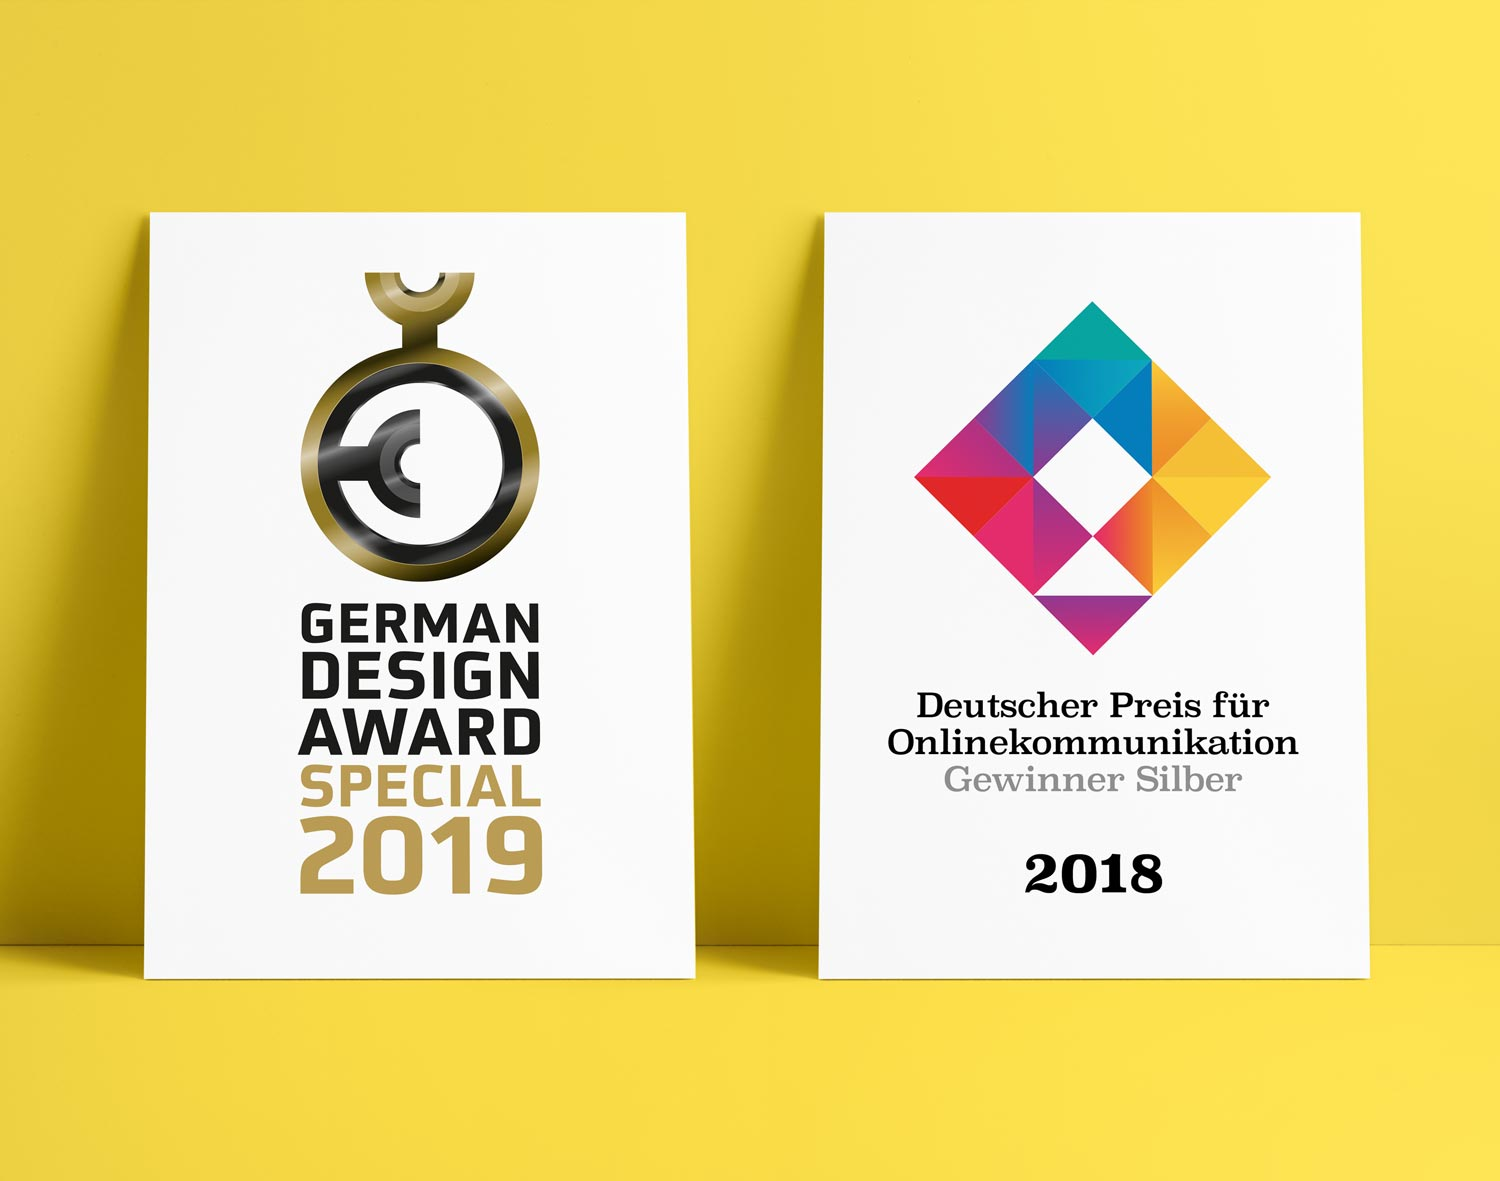 GermanDesignAward2019_DPOK2018_02